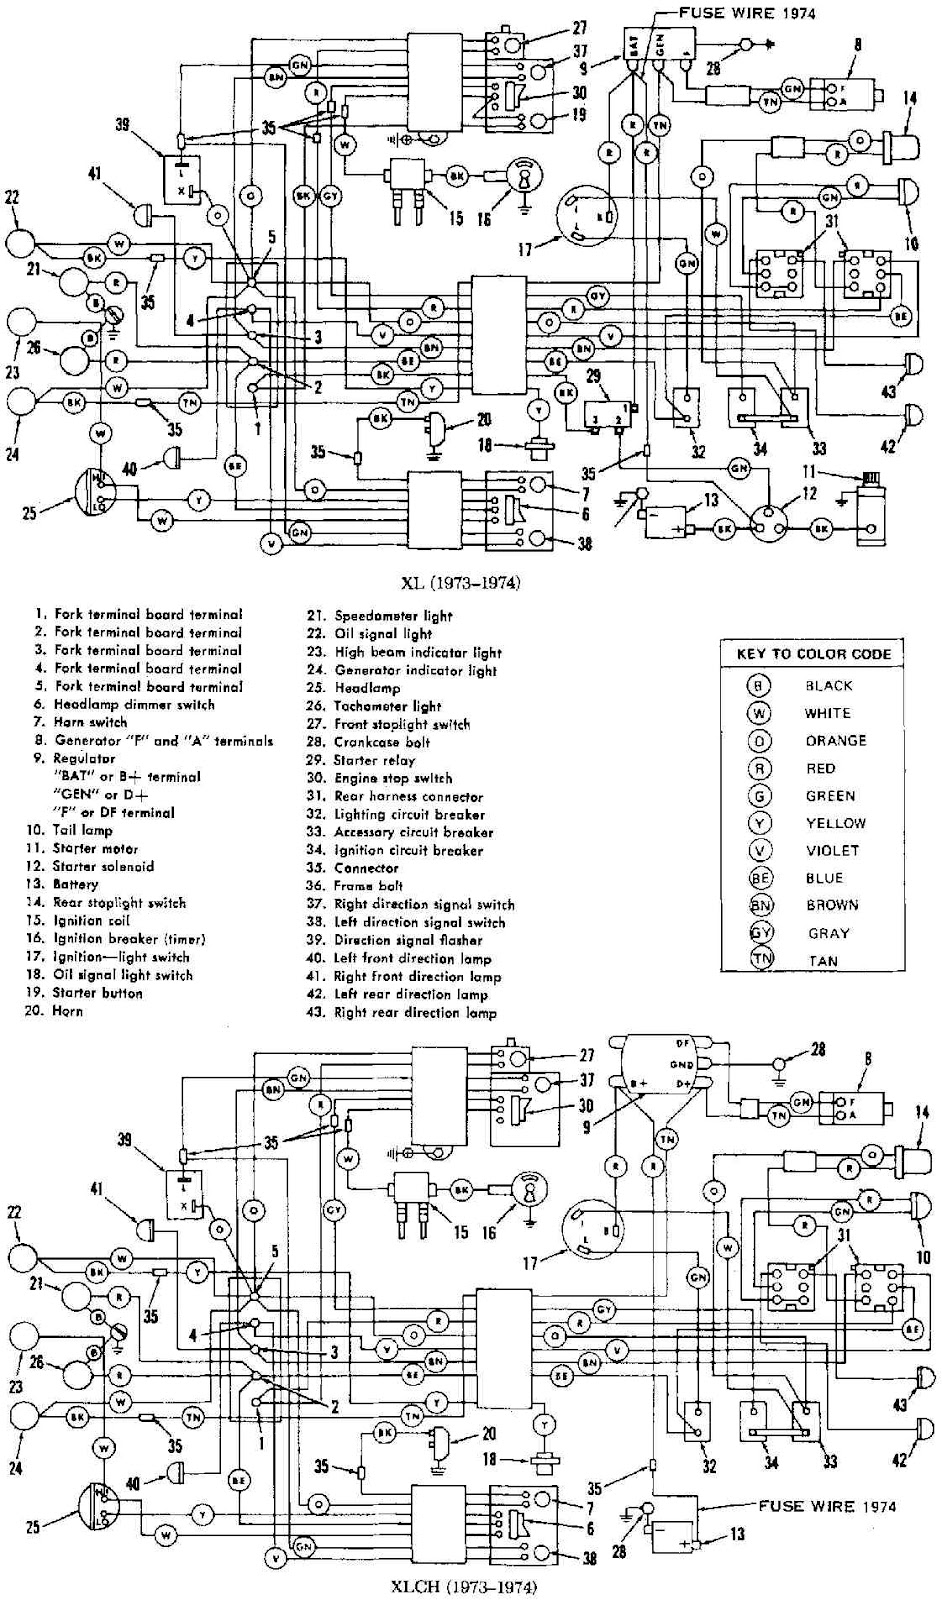 Harley Indicator Wiring Diagram on